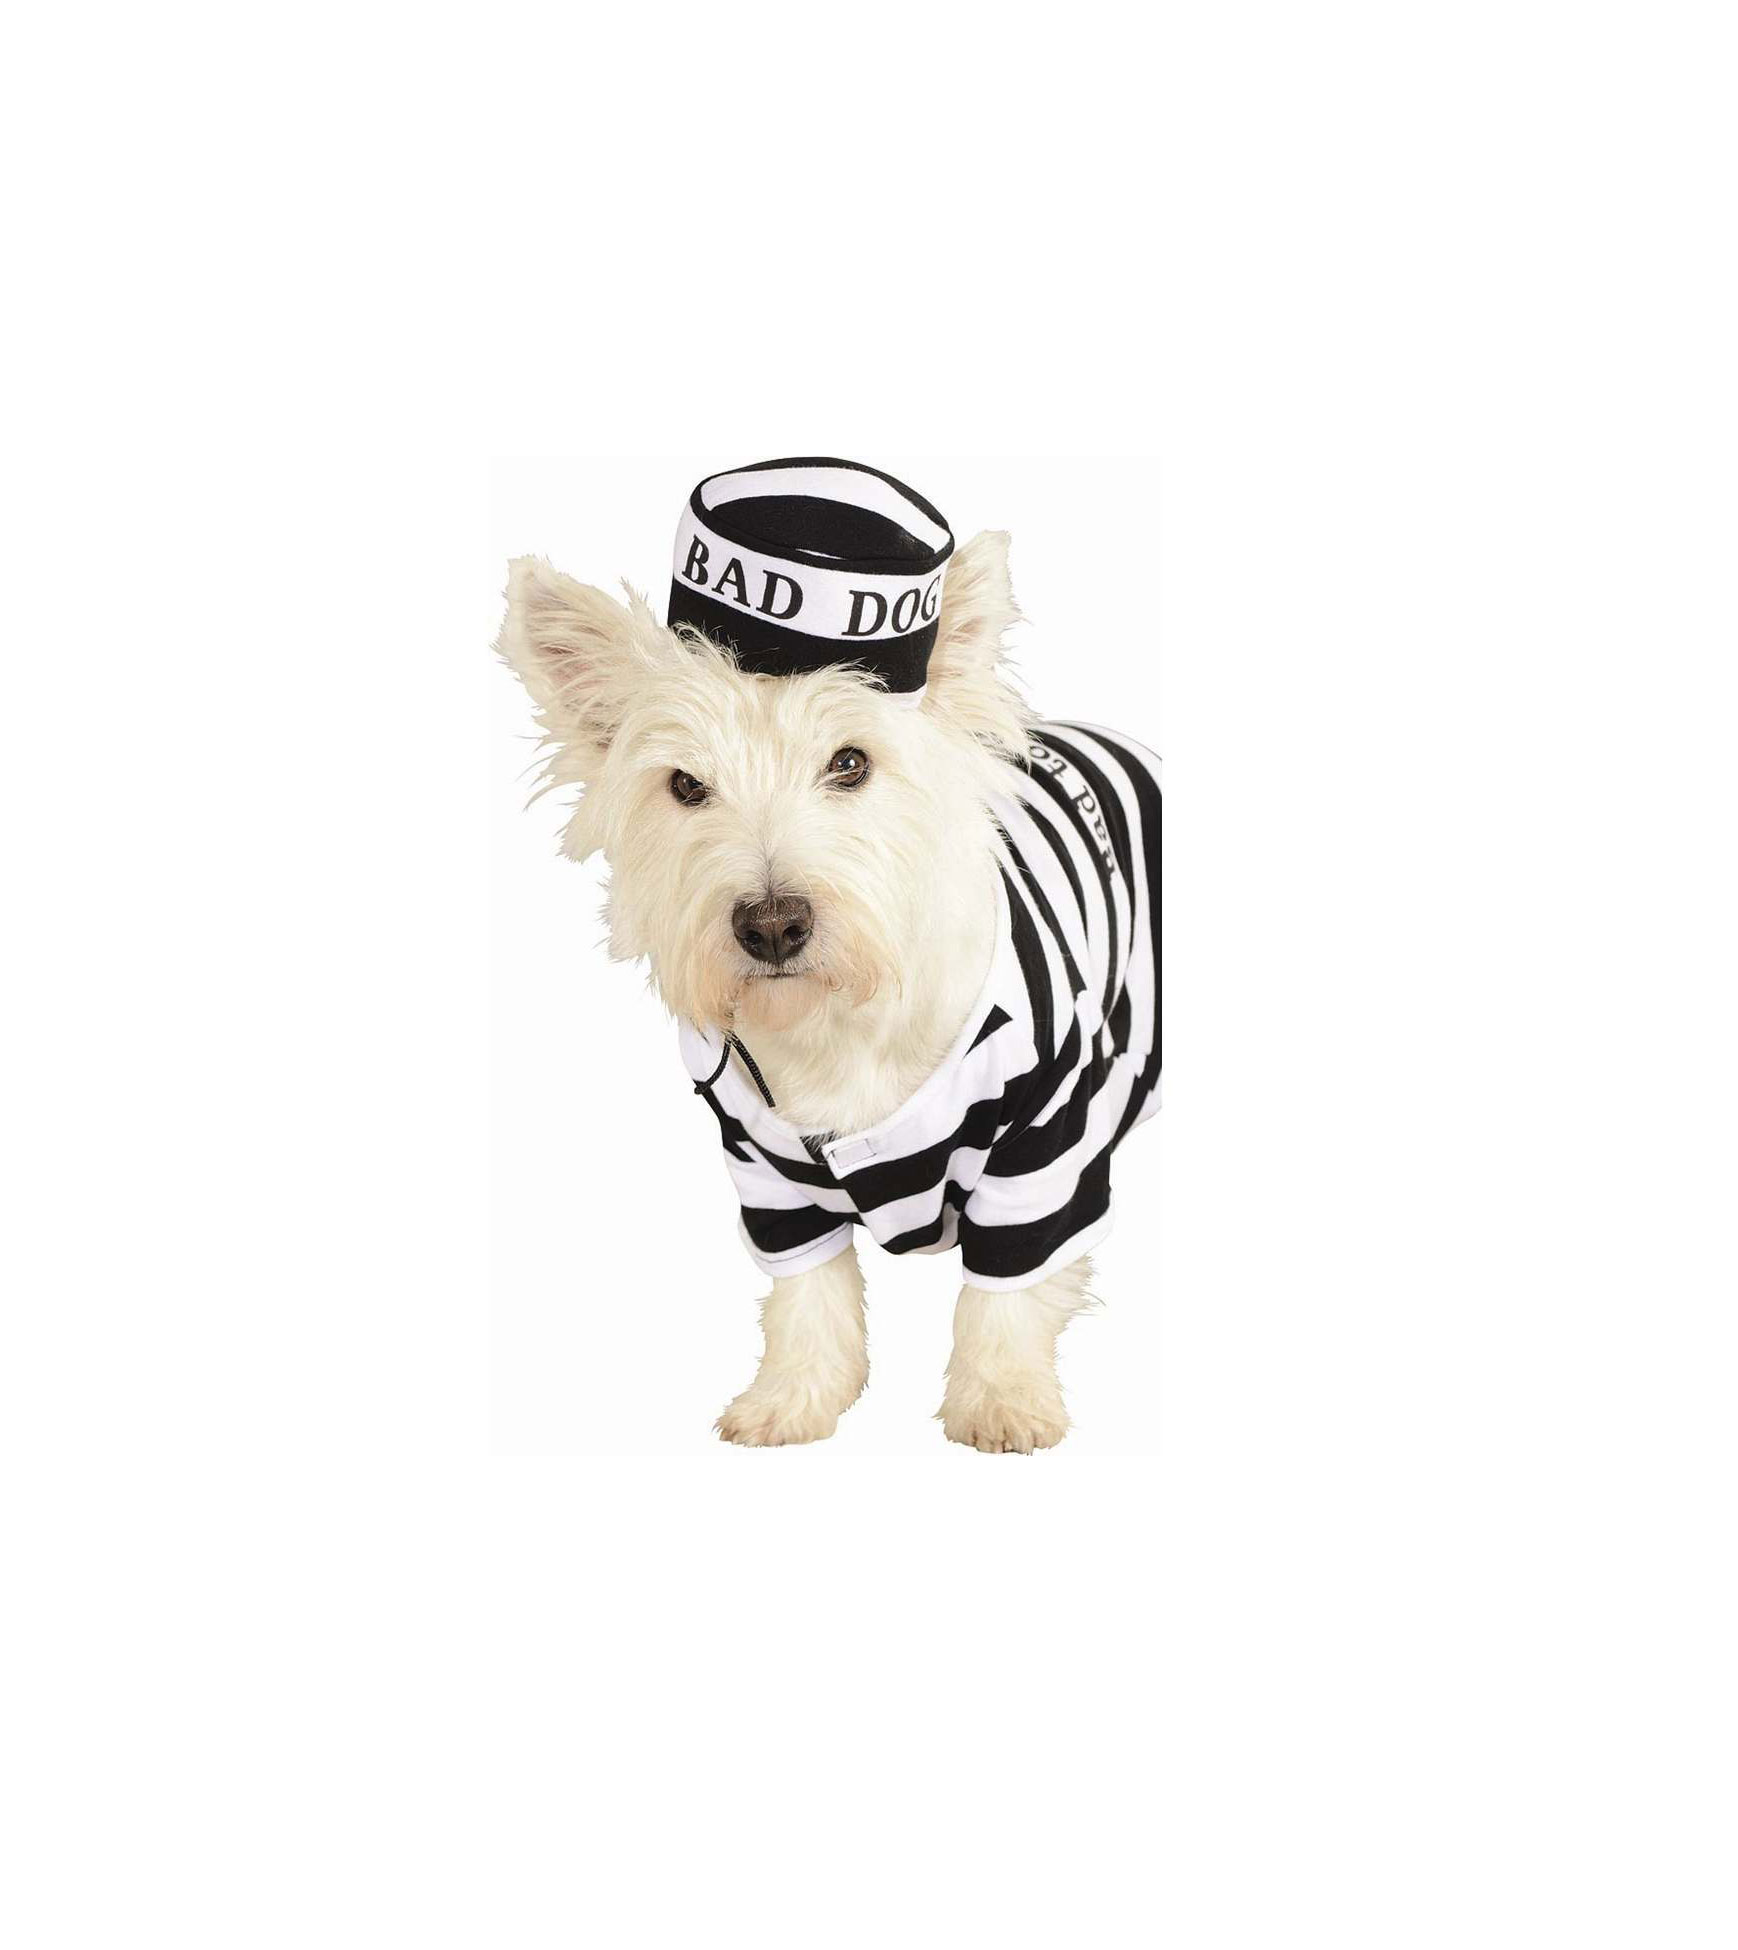 Prisoner Dog Costumer